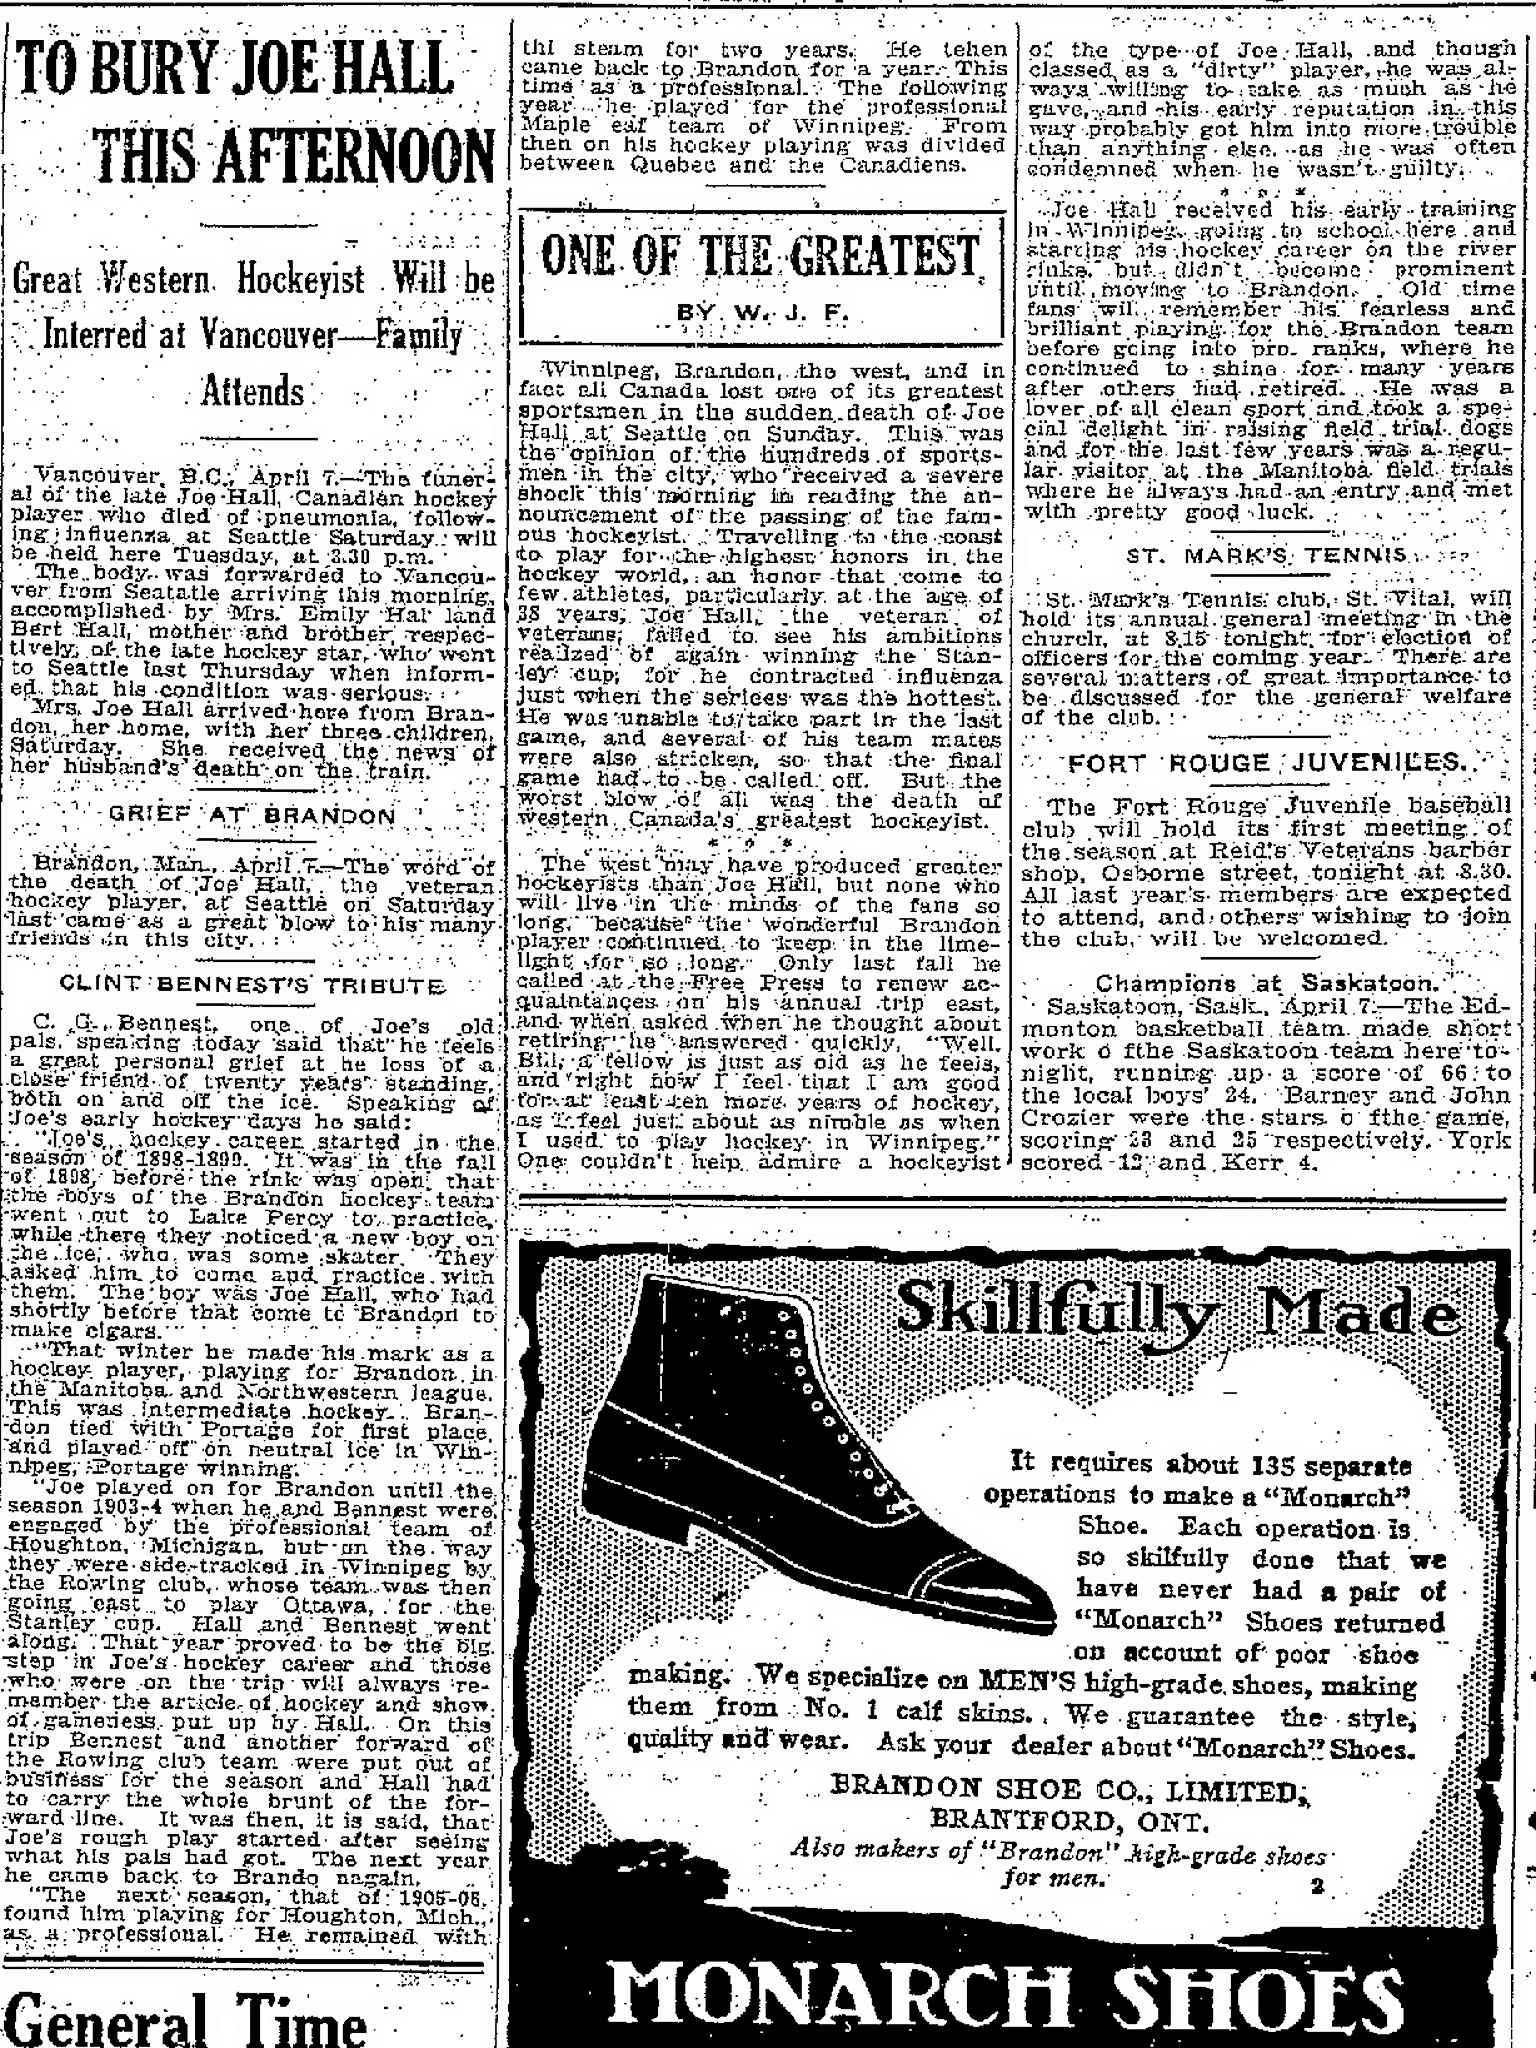 An article published in the Manitoba Free Press on April 8, 1919.